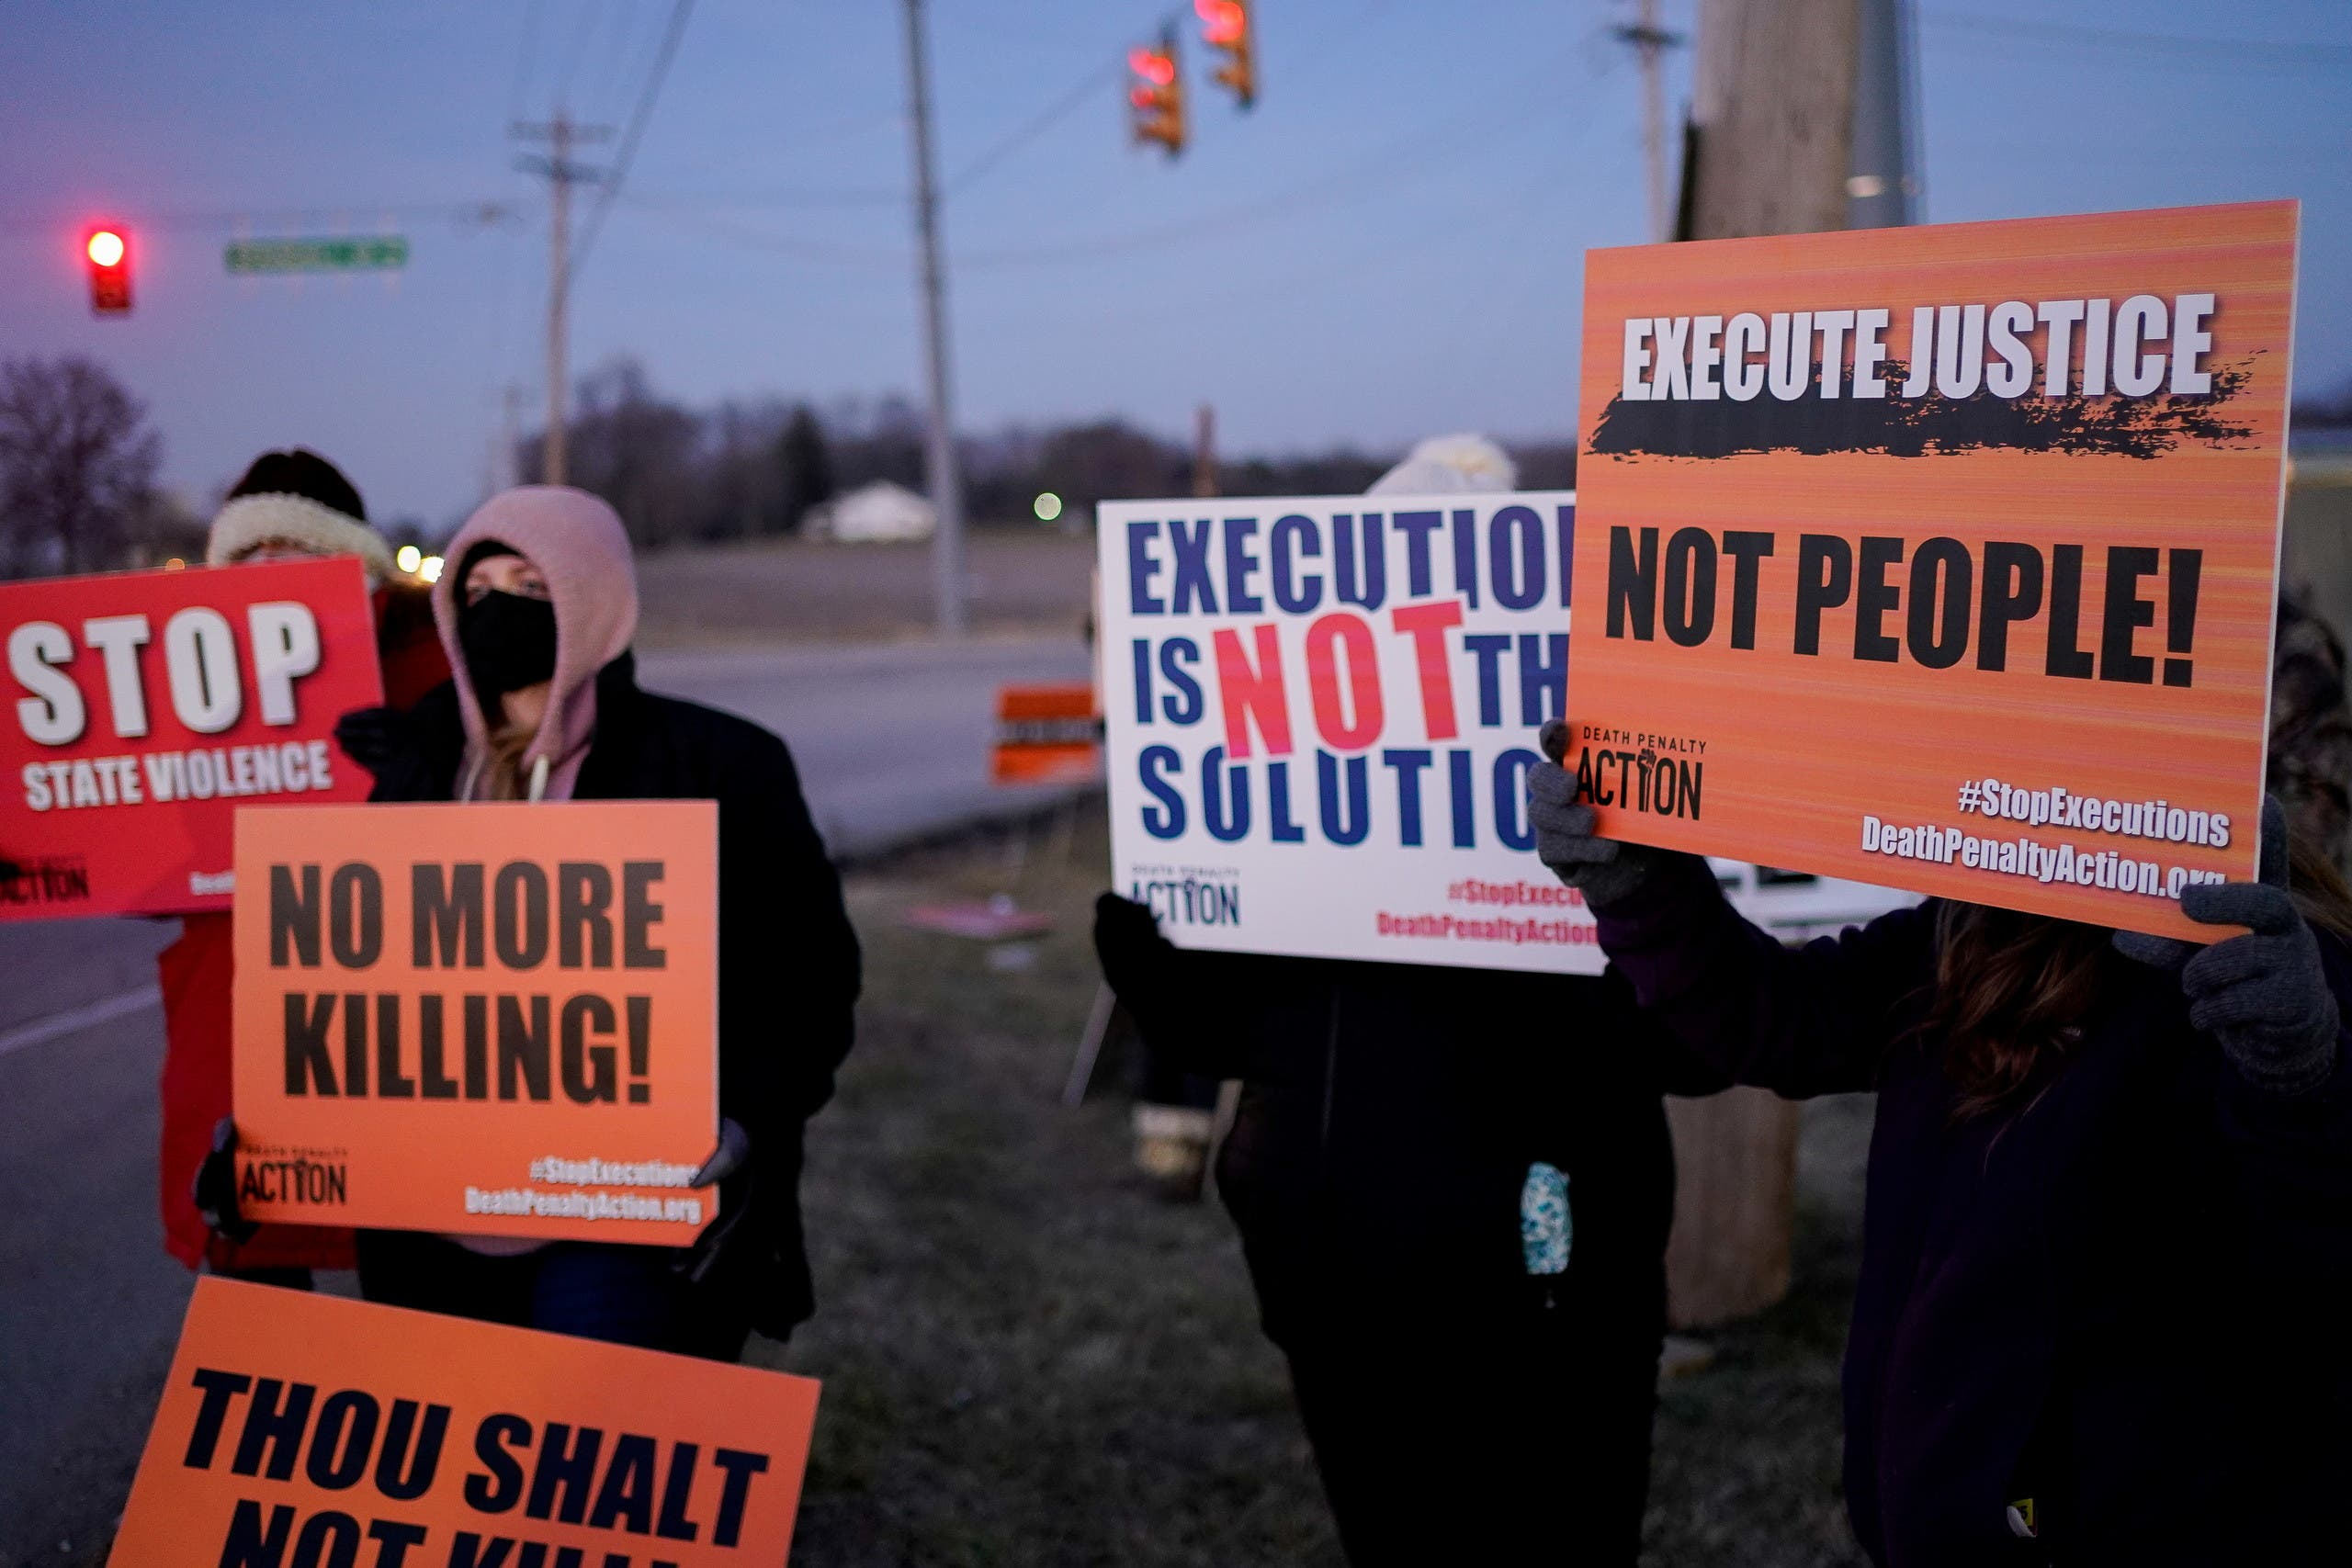 Activists in opposition to the death penalty gather to protest the execution of Lisa Montgomery. (Reuters)